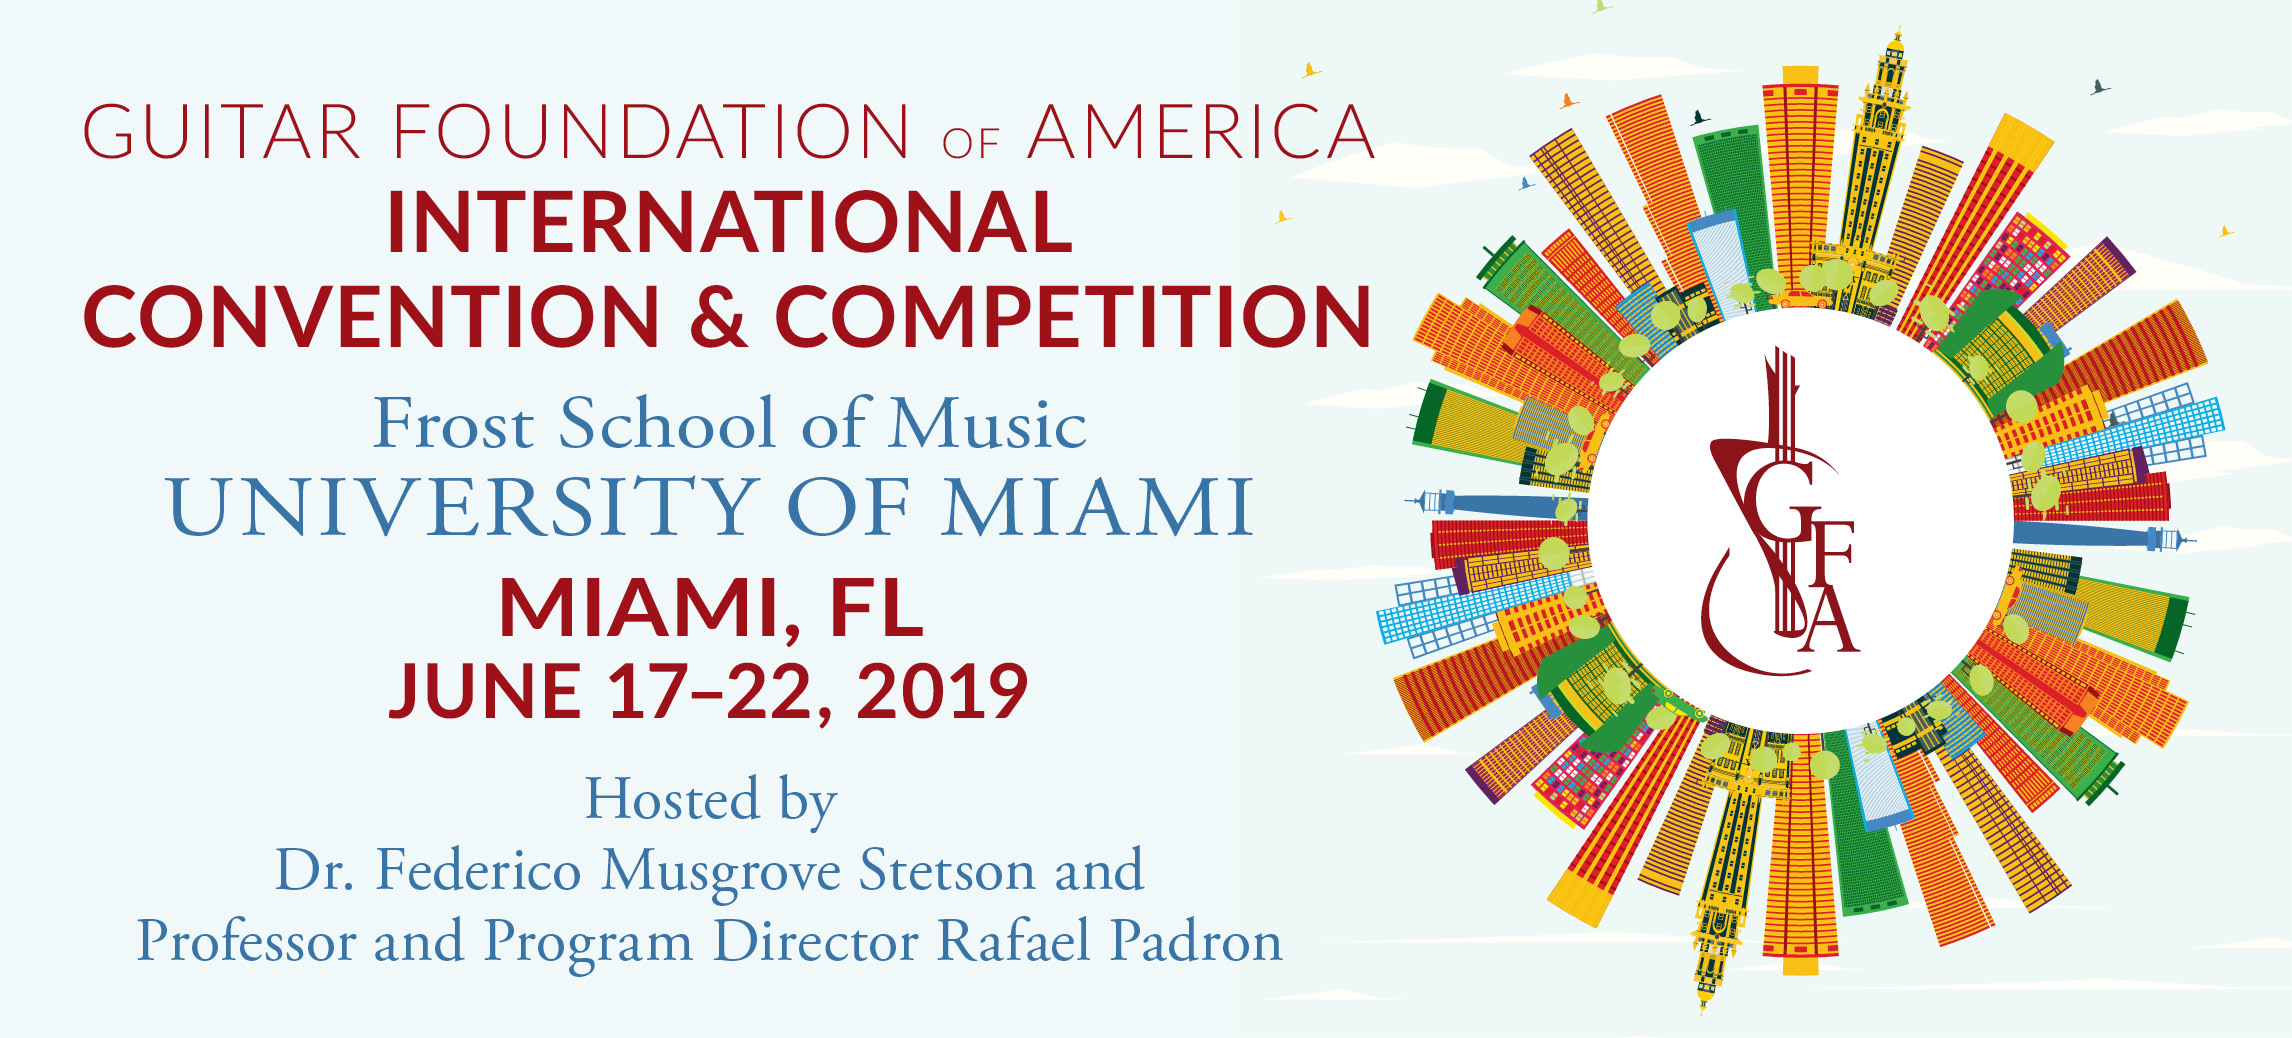 GFA Convention & Competition - June 17 - 22, 2019